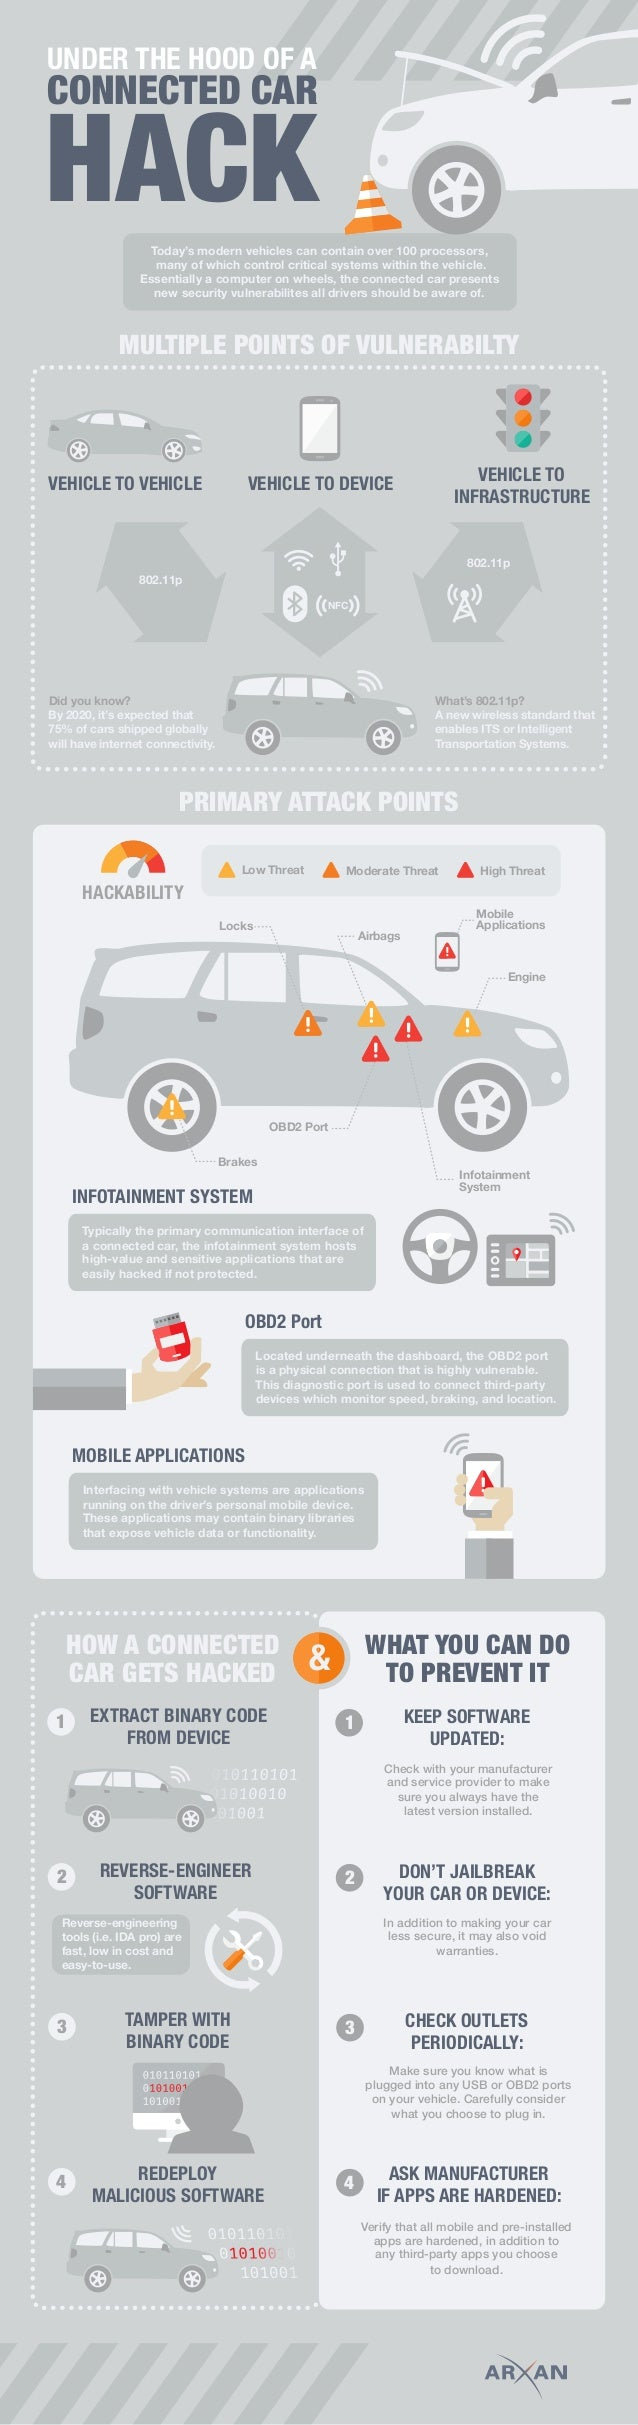 CONNECTED CAR HACK UNDER THE HOOD OF A new security vulnerabilites all drivers should be aware of. Today's modern vehicles...